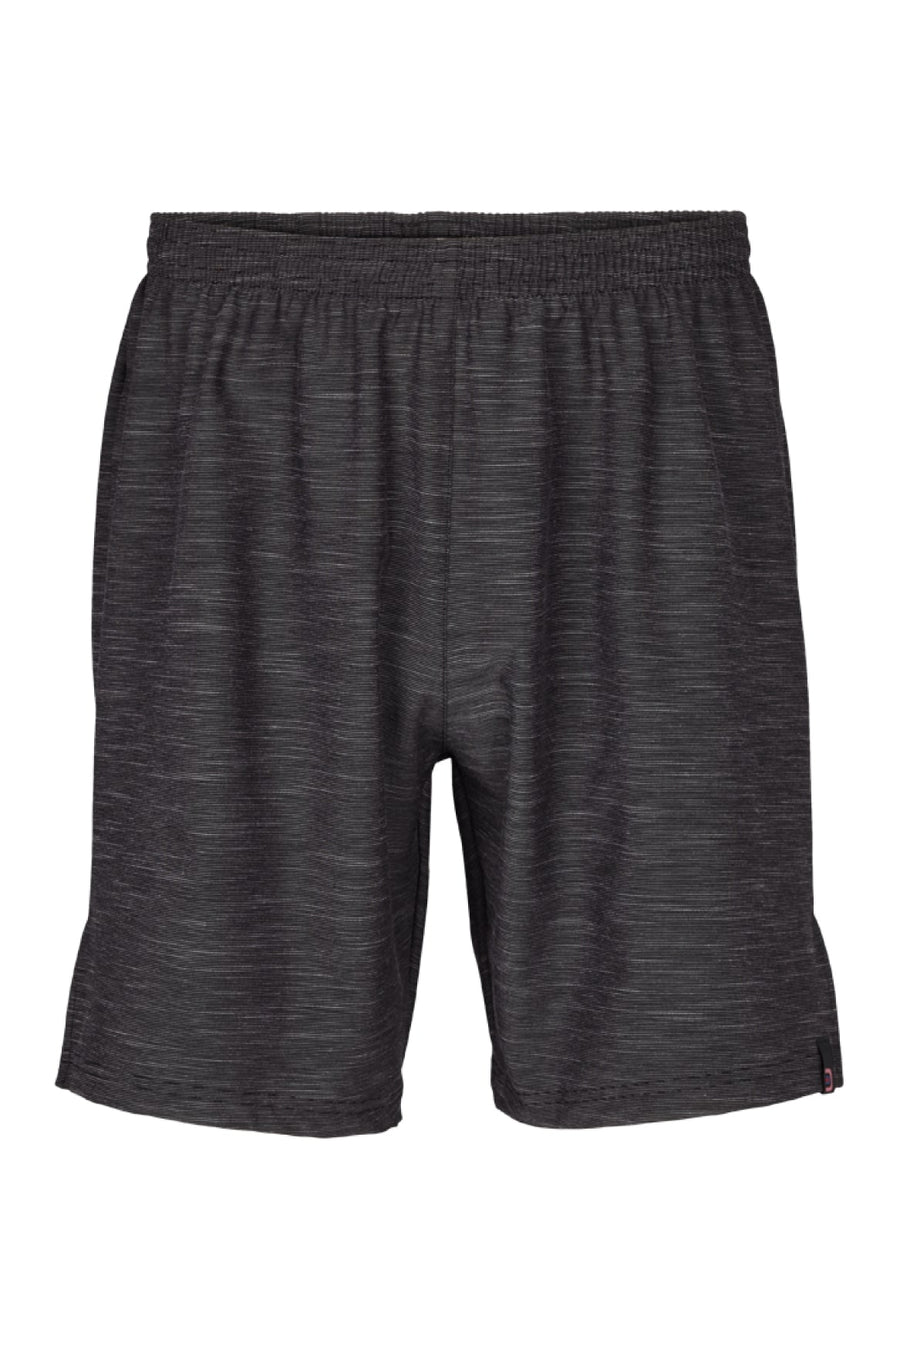 vain dane athletic men's shorts made from plastic bottles and textile waste